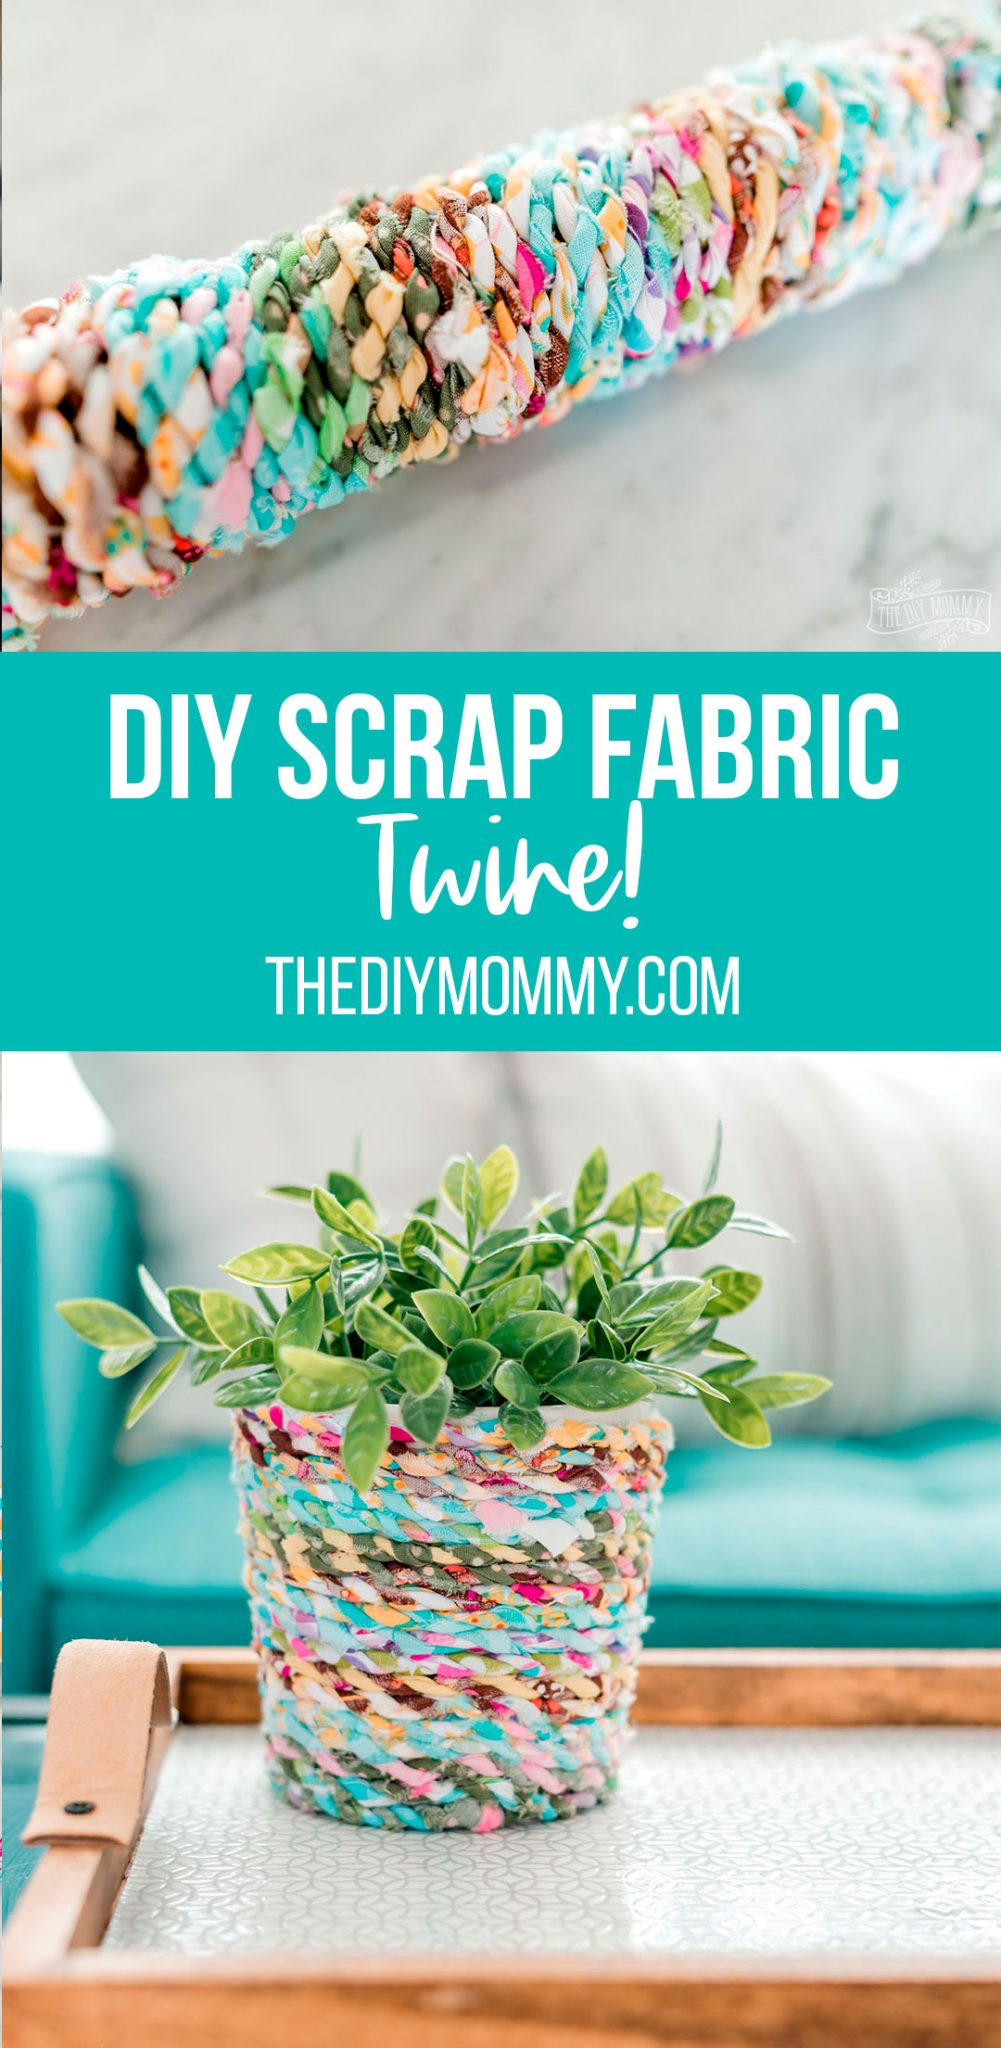 How to make DIY fabric scrap twine from small strips of extra fabric